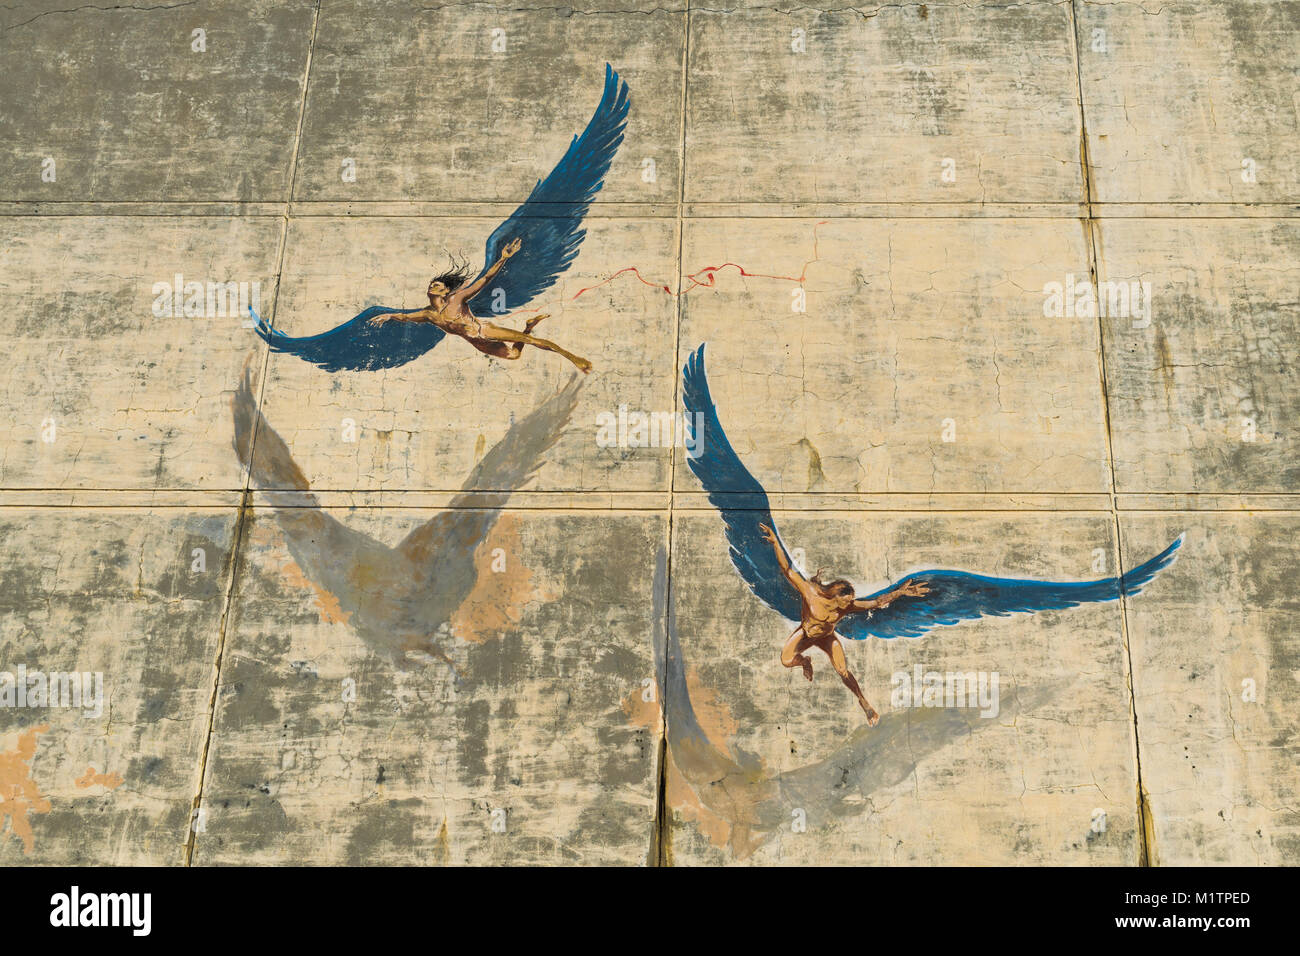 Daedalus and Icarus artwork on a wall - Stock Image